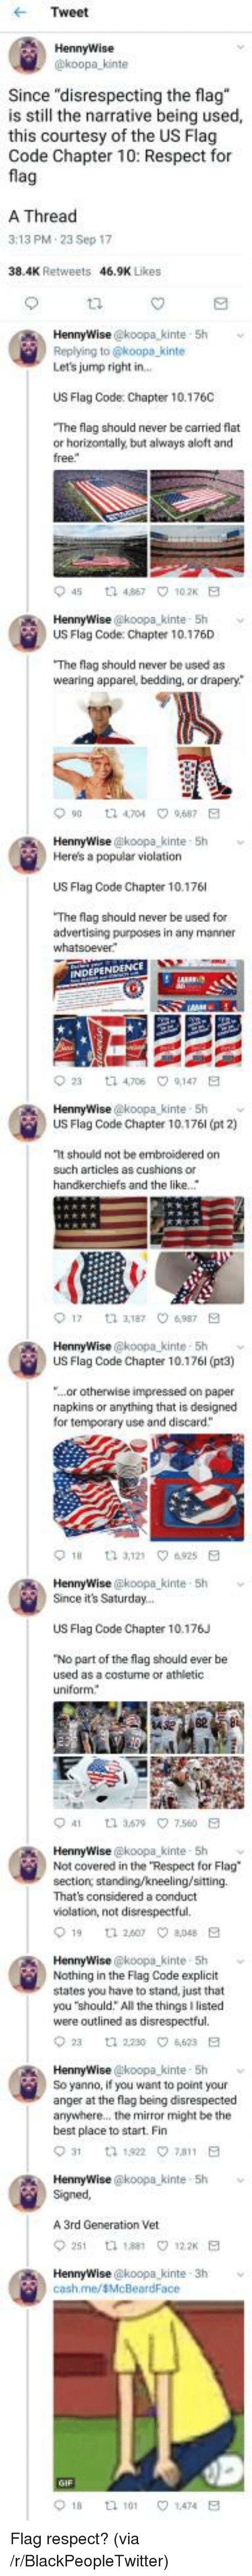 """Blackpeopletwitter, Respect, and Best: Tweet  HennyWise  koopa kinte  Since """"disrespecting the flag  is still the narrative being used,  this courtesy of the US Flag  Code Chapter 10: Respect for  fla  A Thread  3:13 PM.23 Sep 17  38.4K Retweets  46.9K Likes  HennyWise @koopa_kinte 5h  Replying to @koopa kinte  Let's jump right in  US Flag Code: Chapter 10.176C  The flag should never be carried flat  or horizontally, but always aloft and  free  45 t2 467 102K E  US Flag Code: Chapter 10.176D  The flag should never be used as  wearing apparel, bedding, or drapery*  90 t 4704 9687 E  HennyWise @koopa kinte 5h  Here's a popular violation  US Flag Code Chapter 10.176  The flag should never be used for  advertising purposes in any manner  23  ta 4,706  9,147  HennyWise @koopa kinte- Sh  US Flag Code Chapter 10.176l (pt 2)  It should not be embroidered on  such articles as cushions or  handkerchiefs and the like.  017  3,187 ㅇ6,987  HennyWise @koopa kinte- 5h  US Flag Code Chapter 10.176l (pt3)  ...or otherwise impressed on paper  napkins or anything that is designed  for temporary use and discard  HennyWise @koopa-kinte , 5h  Since it's Saturday..  ﹀  US Flag Code Chapter 10.176J  No part of the flag should ever be  used as a costurne or athletic  uniform  41  3.579\7.560  HennyWise @koopa kinte 5h  Not covered in the Respect for Flag  section, standing/kneeling/sitting.  That's considered a conduct  violation, not disrespectful.  19 1 260708E  HennyWise @koopa kinte 5h  Nothing in the Flag Code explicit  states you have to stand, just that  you """"should: All the things I listed  were outlined as disrespectful.  2  2230 4623 E  HennyWise @koopa kinte 5h v  So yanno, if you want to point your  anger at the flag being disrespected  anywhere.. the mirror might be the  best place to start. Fin  HennyWise @koopa kinte 5h  Signed  A 3rd Generation Vet  251 th 188 122 E  cash.me/sMcBeardFace  018  tl 101  1.474 <p>Flag respect? (via /r/BlackPeopleTwitter)</p>"""